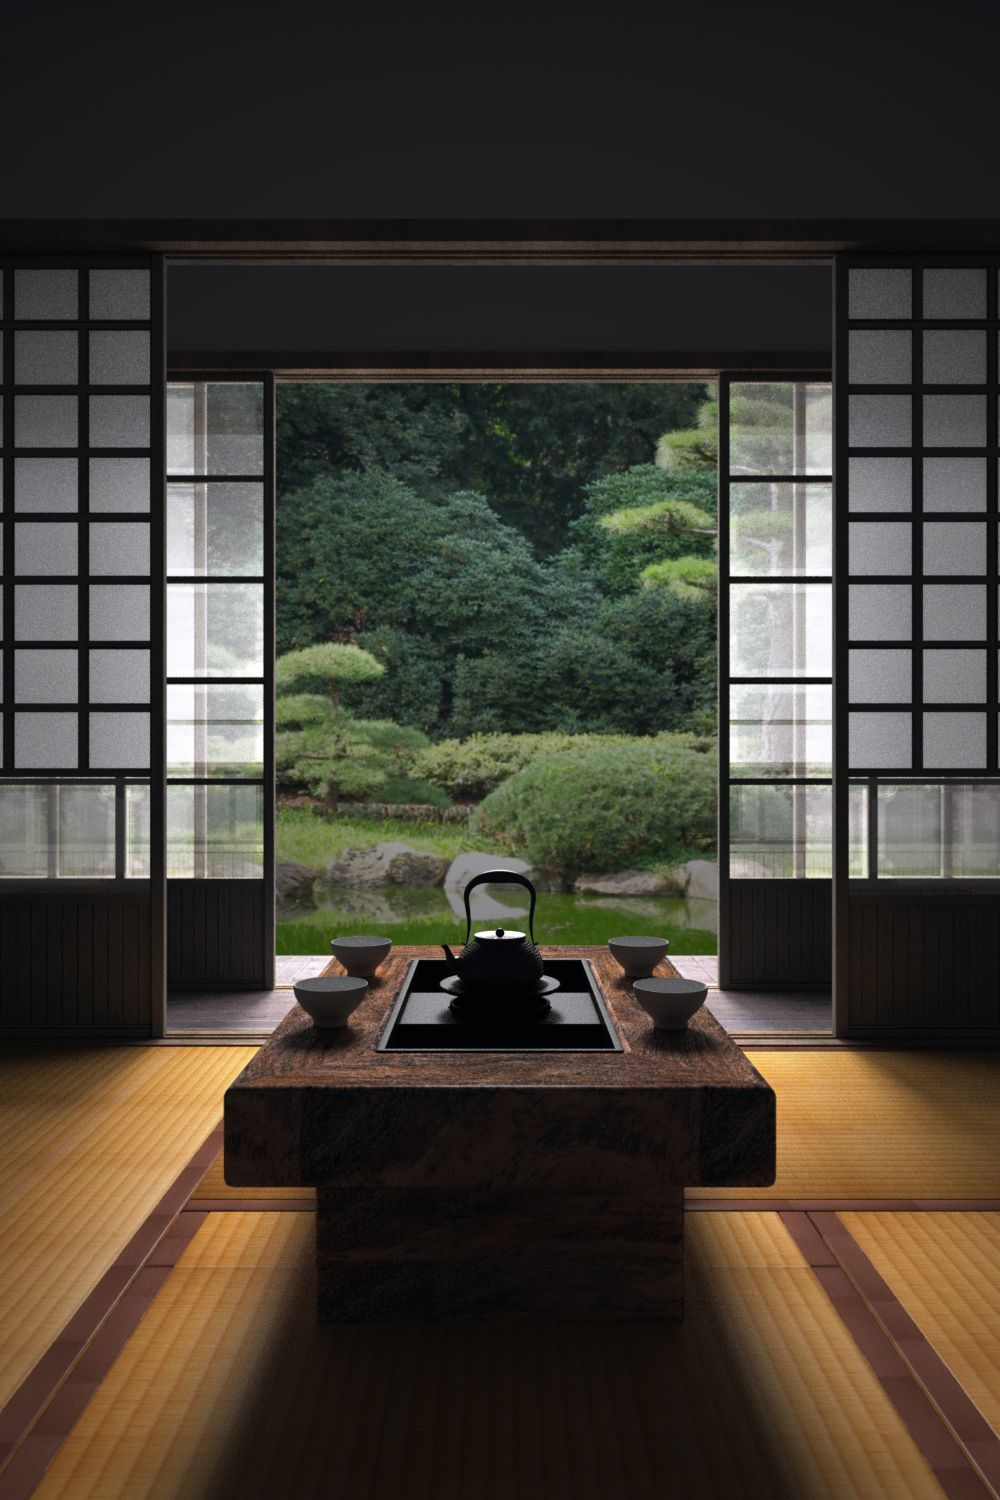 This Is How You Can Create A Japanese Style House 발리 집 집 아름다운 집